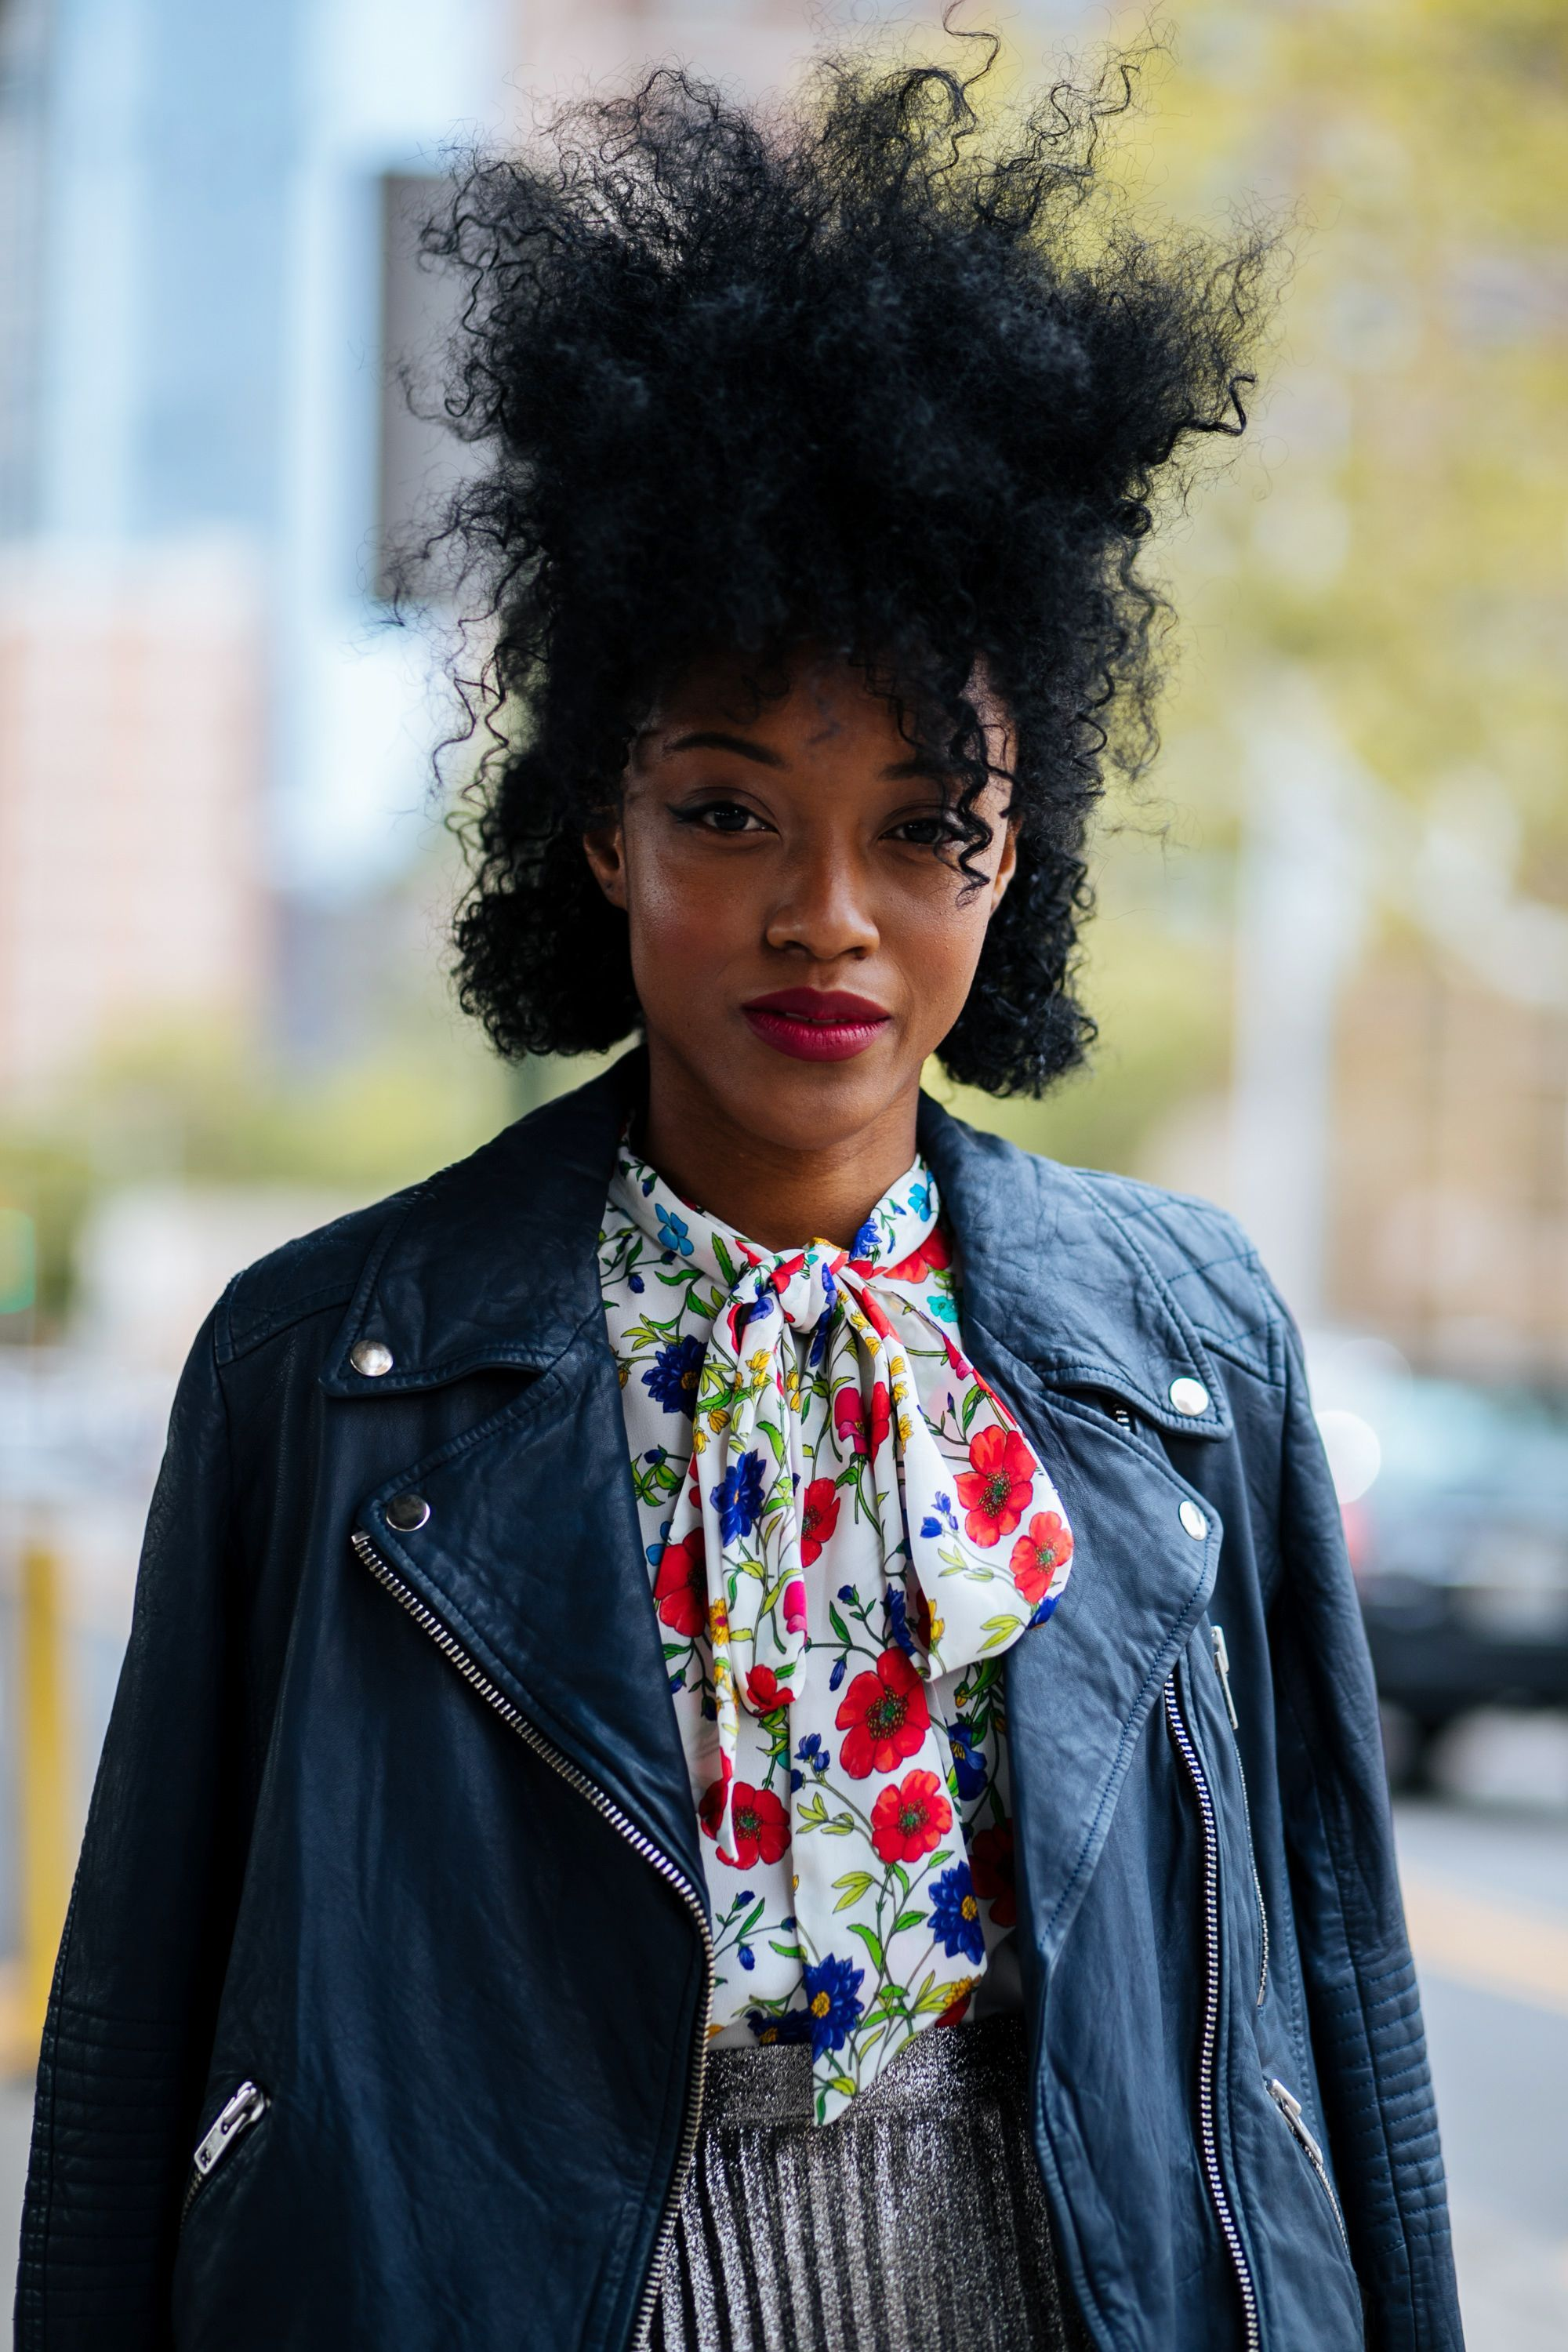 The Street Style Beauty Looks Youll Want to Borrow (or Steal)